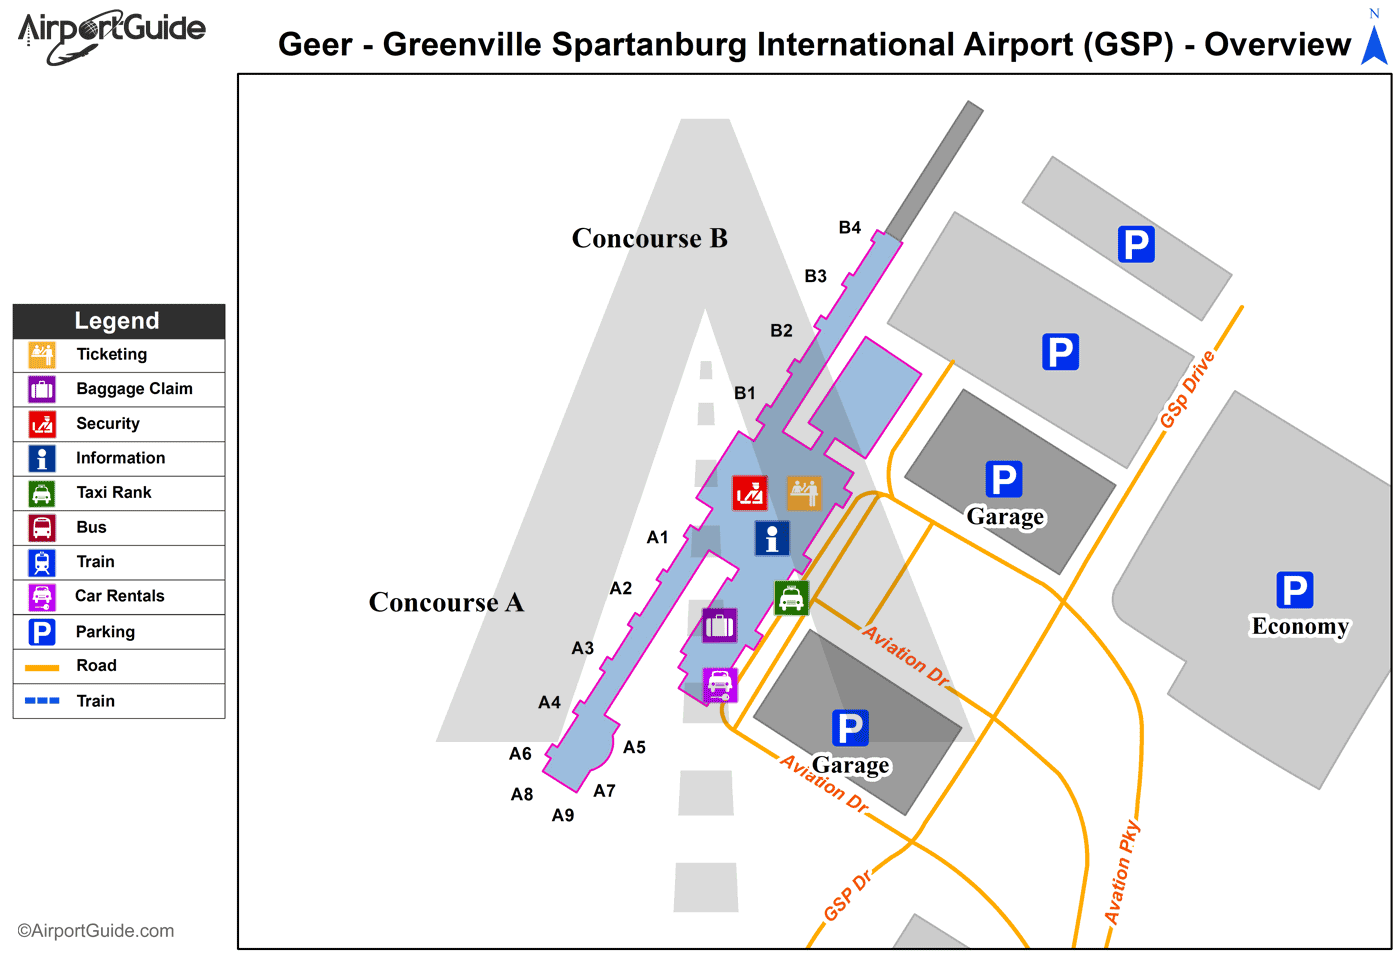 Greer - Greenville Spartanburg International (GSP) Airport Terminal Map - Overview